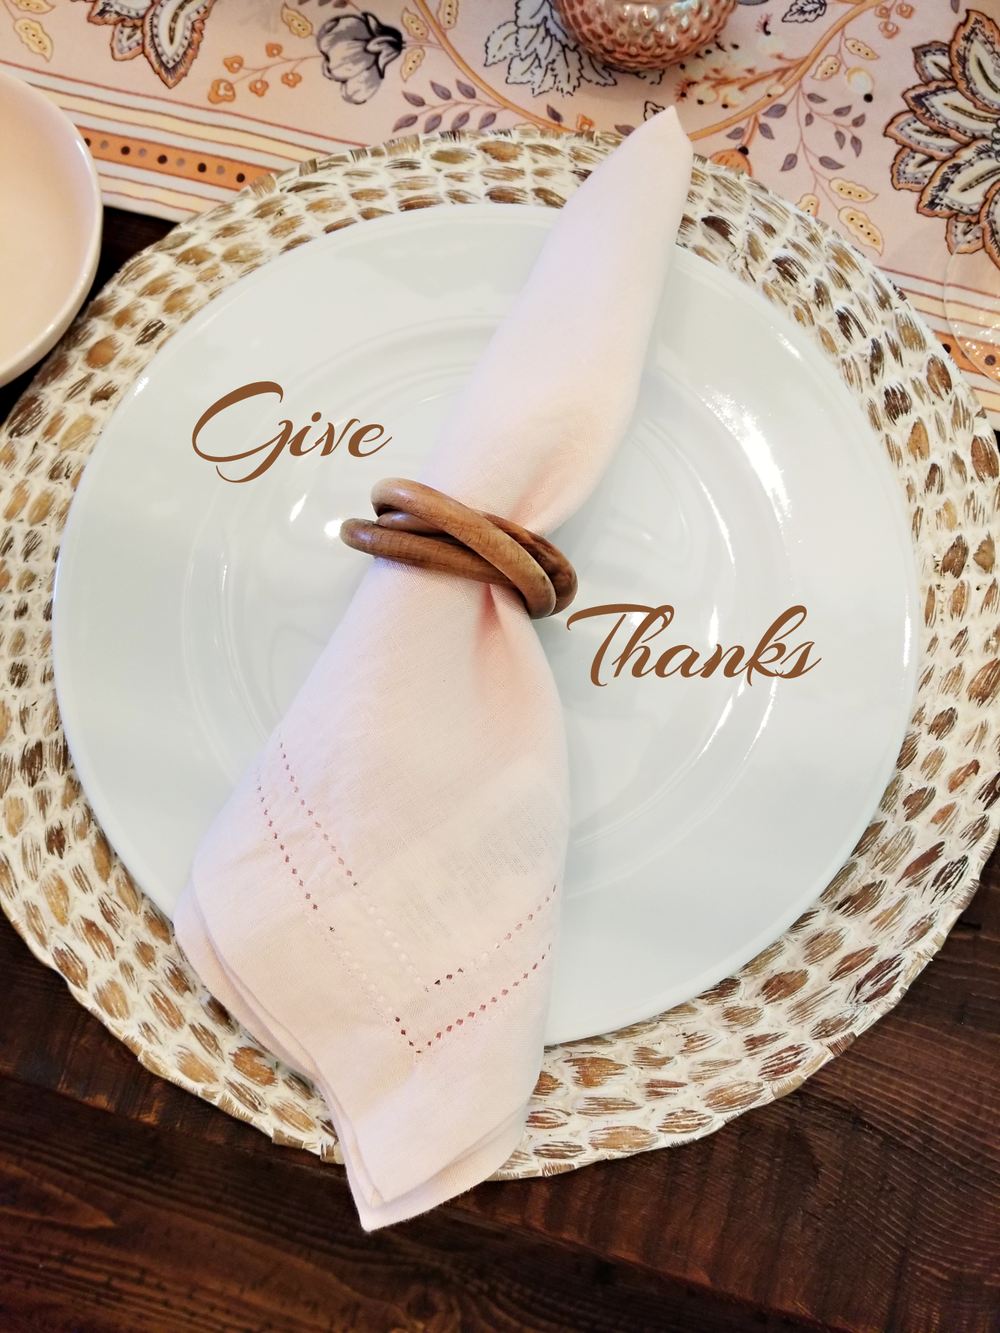 coastal place mat, table runner. light pink napkin and wooden napkin ring